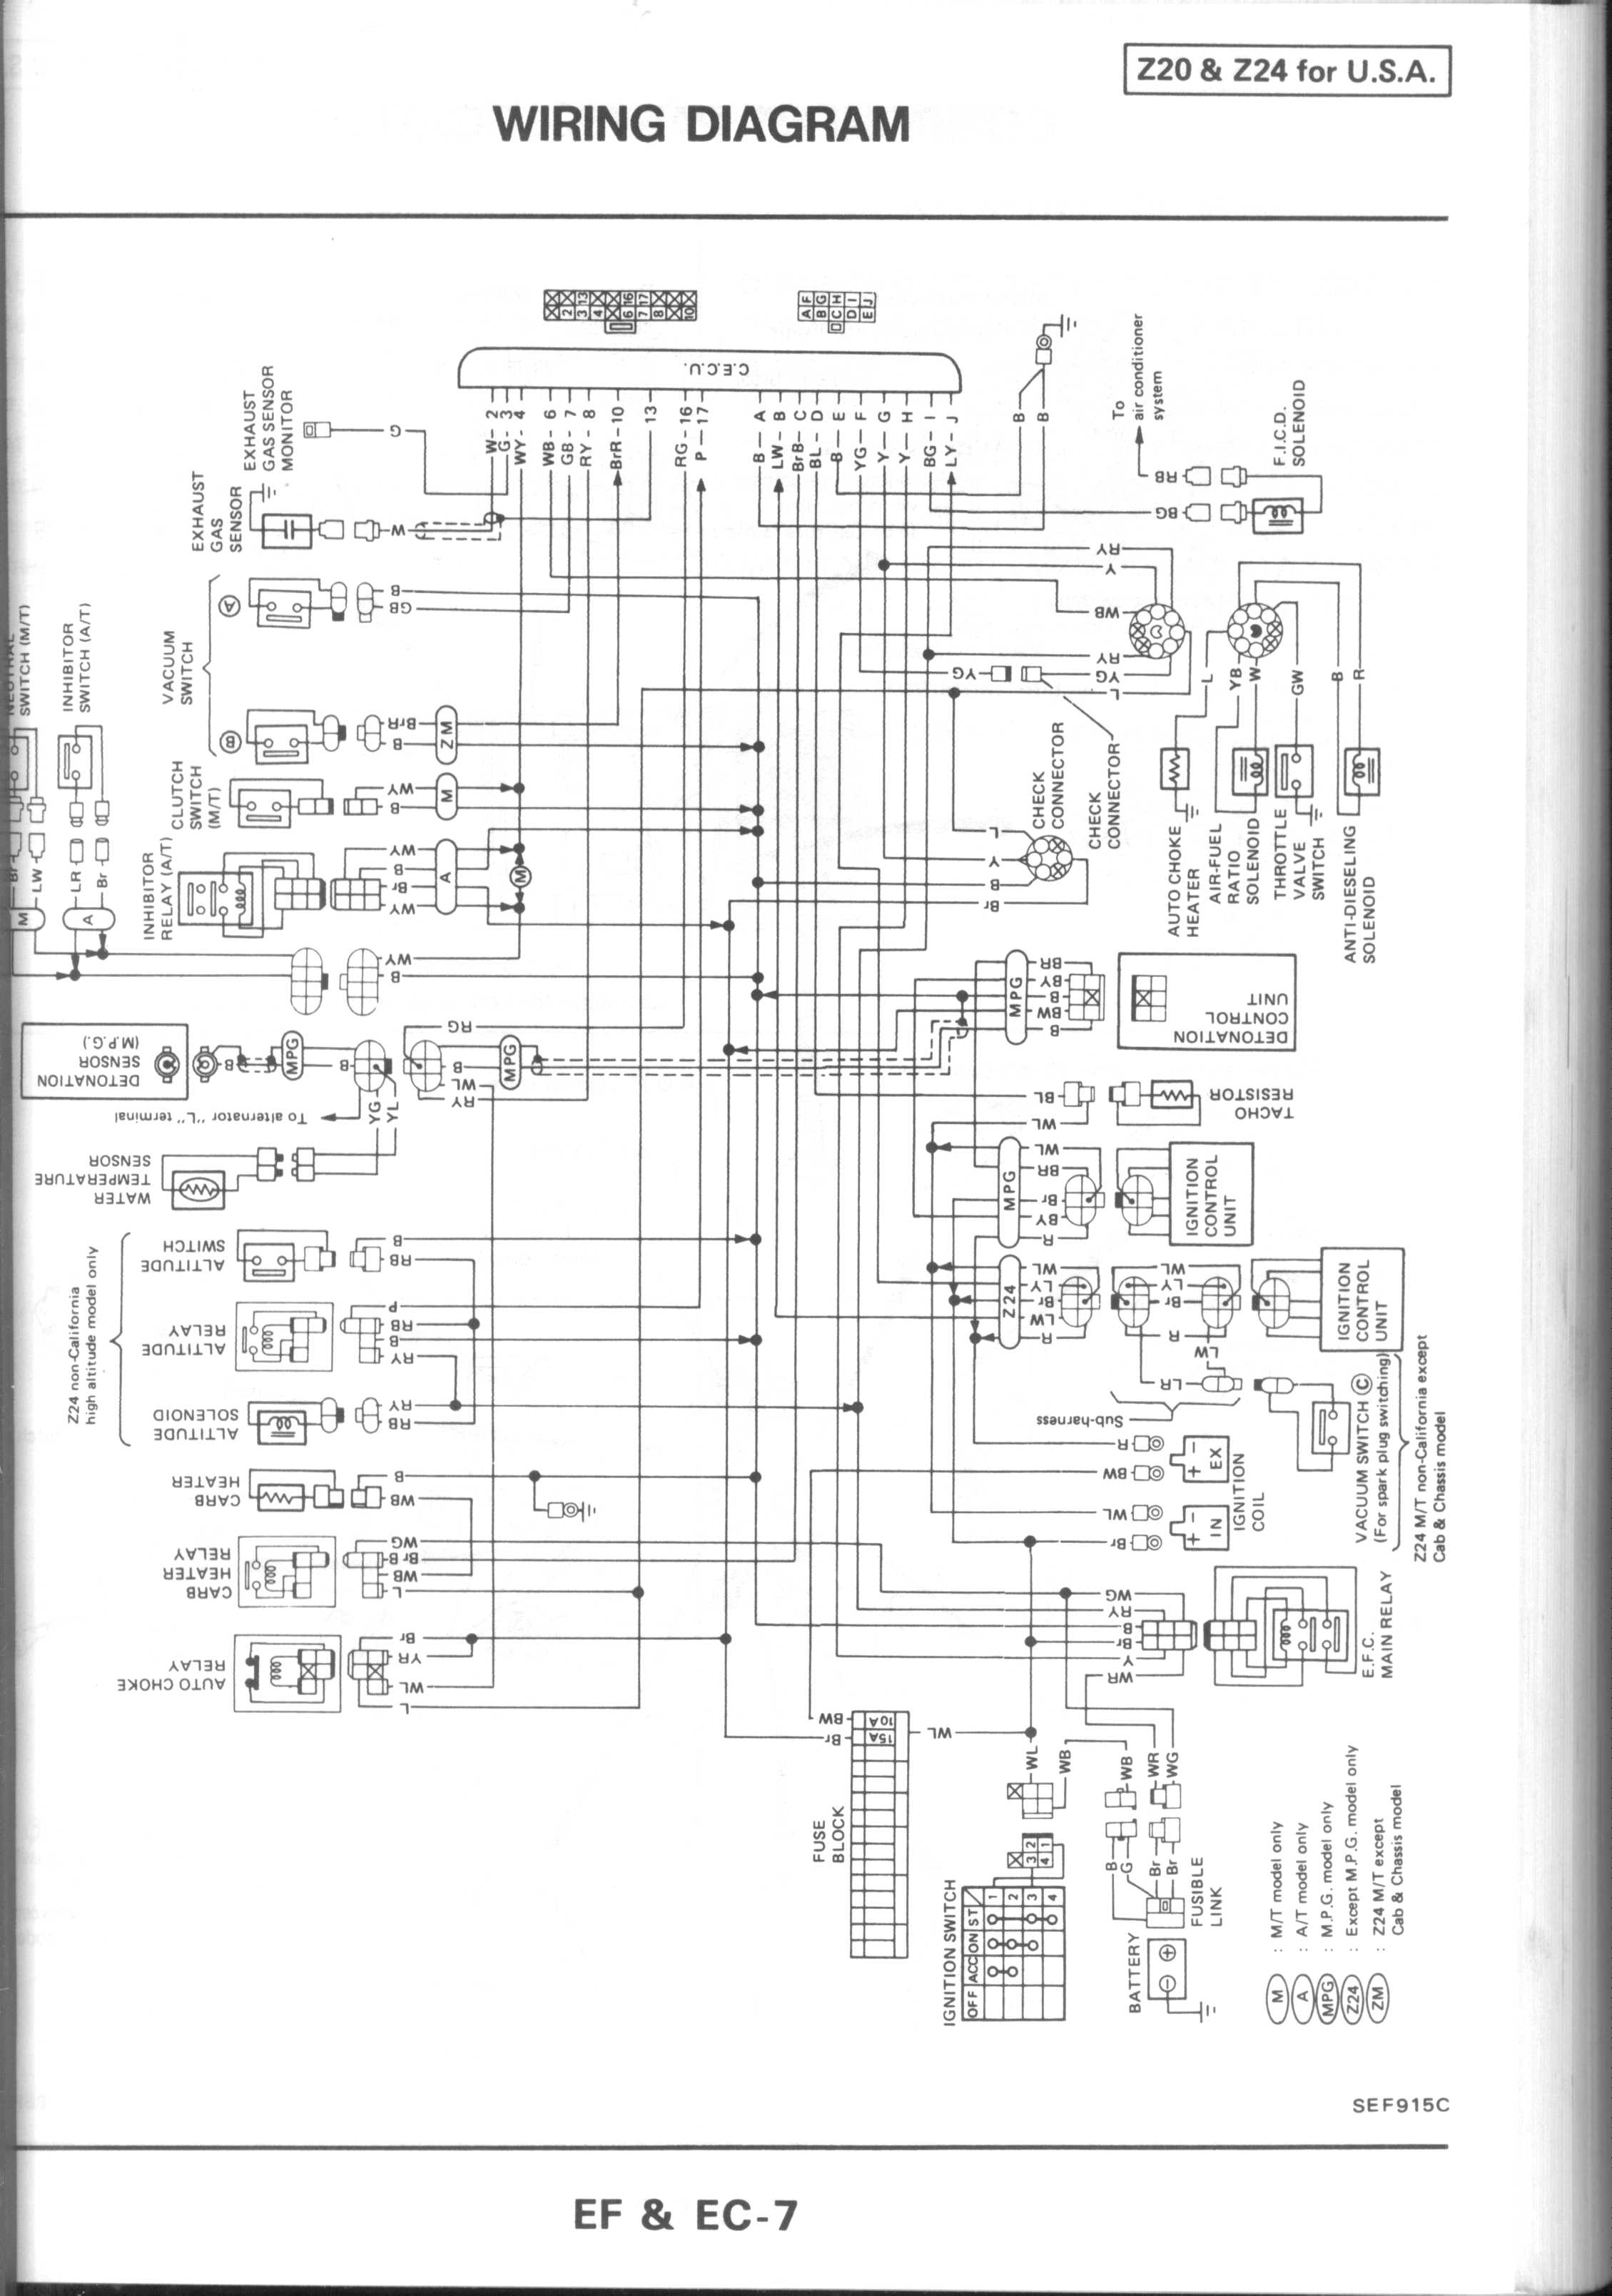 1986 Nissan Pickup Ignition Wiring Diagram Residential Electrical Fiat Uno Turbo And System Circuit Nut Rh Nissannut Com Z24 Engine Dash